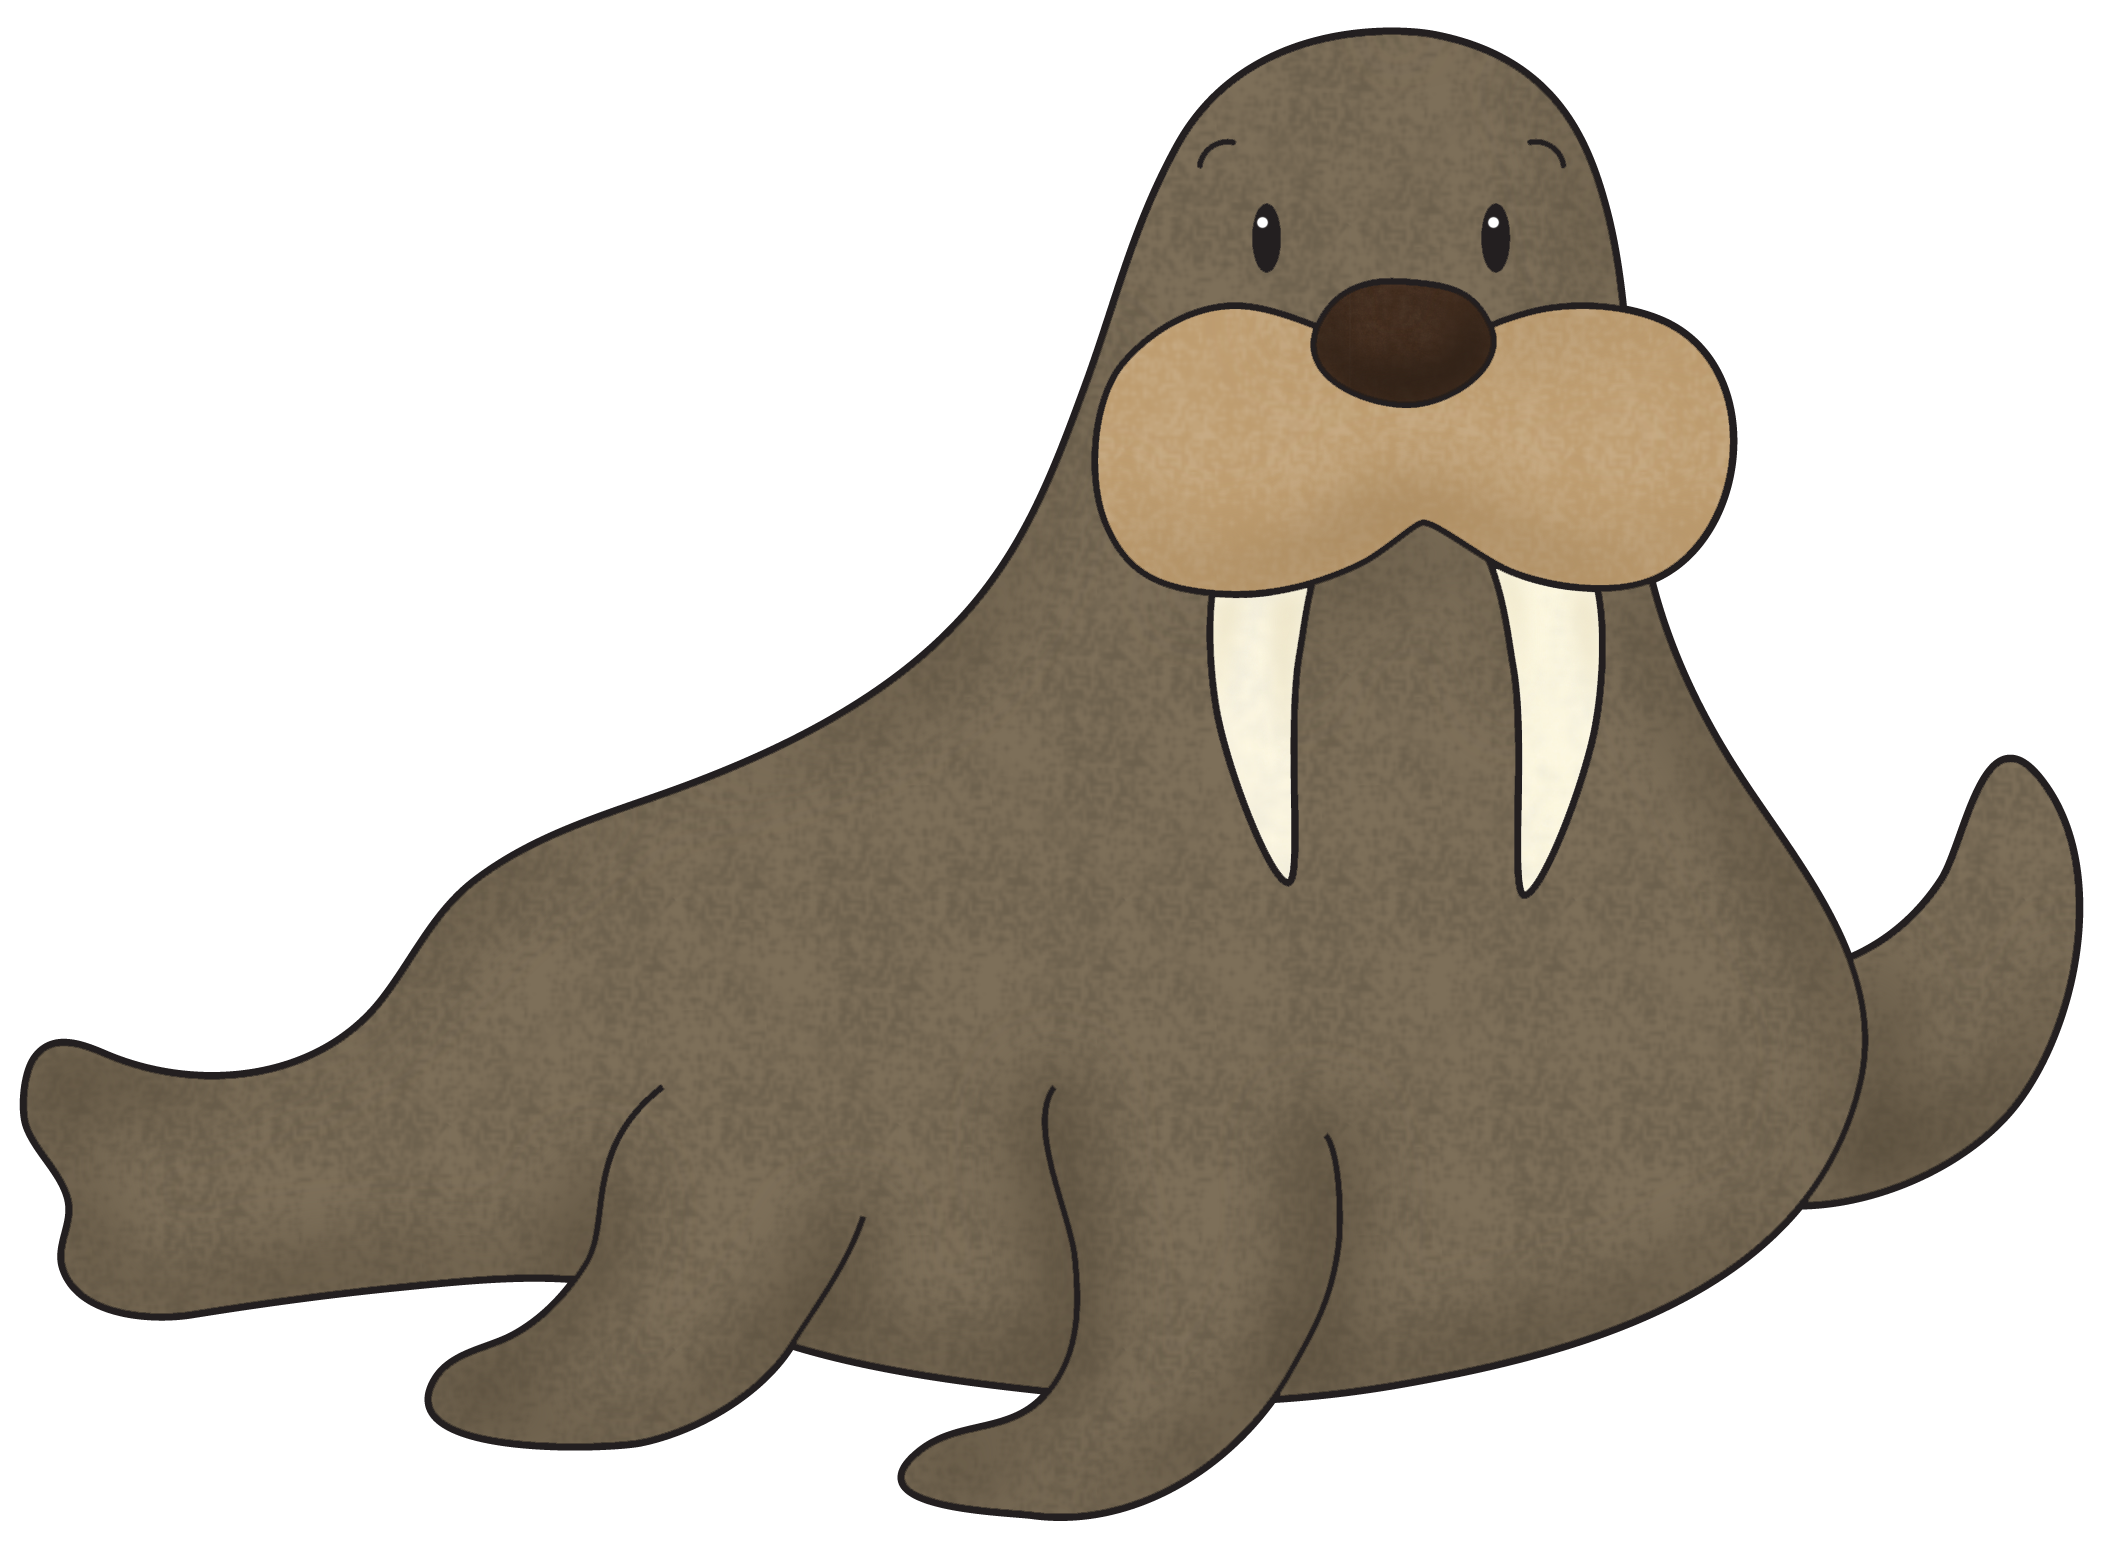 Download png free for. Walrus clipart transparent